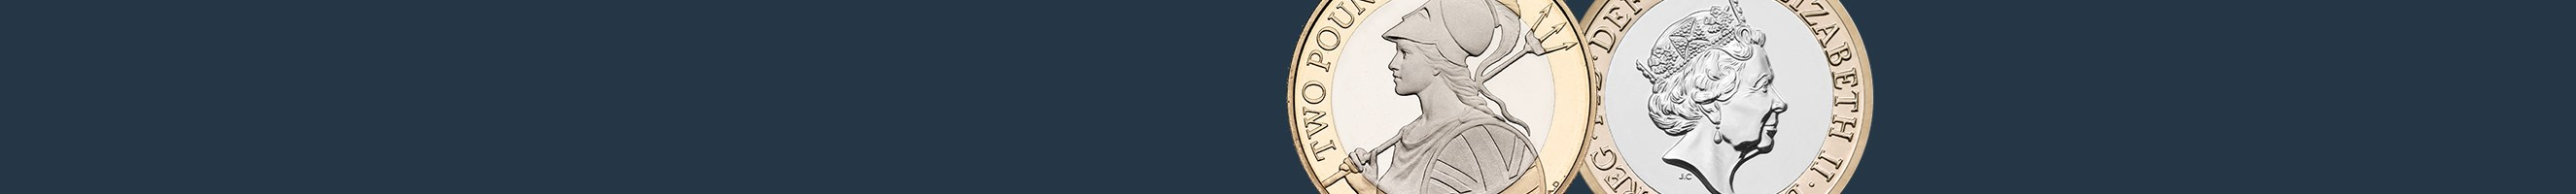 Two Pound Coin Designs And Specifications The Royal Mint